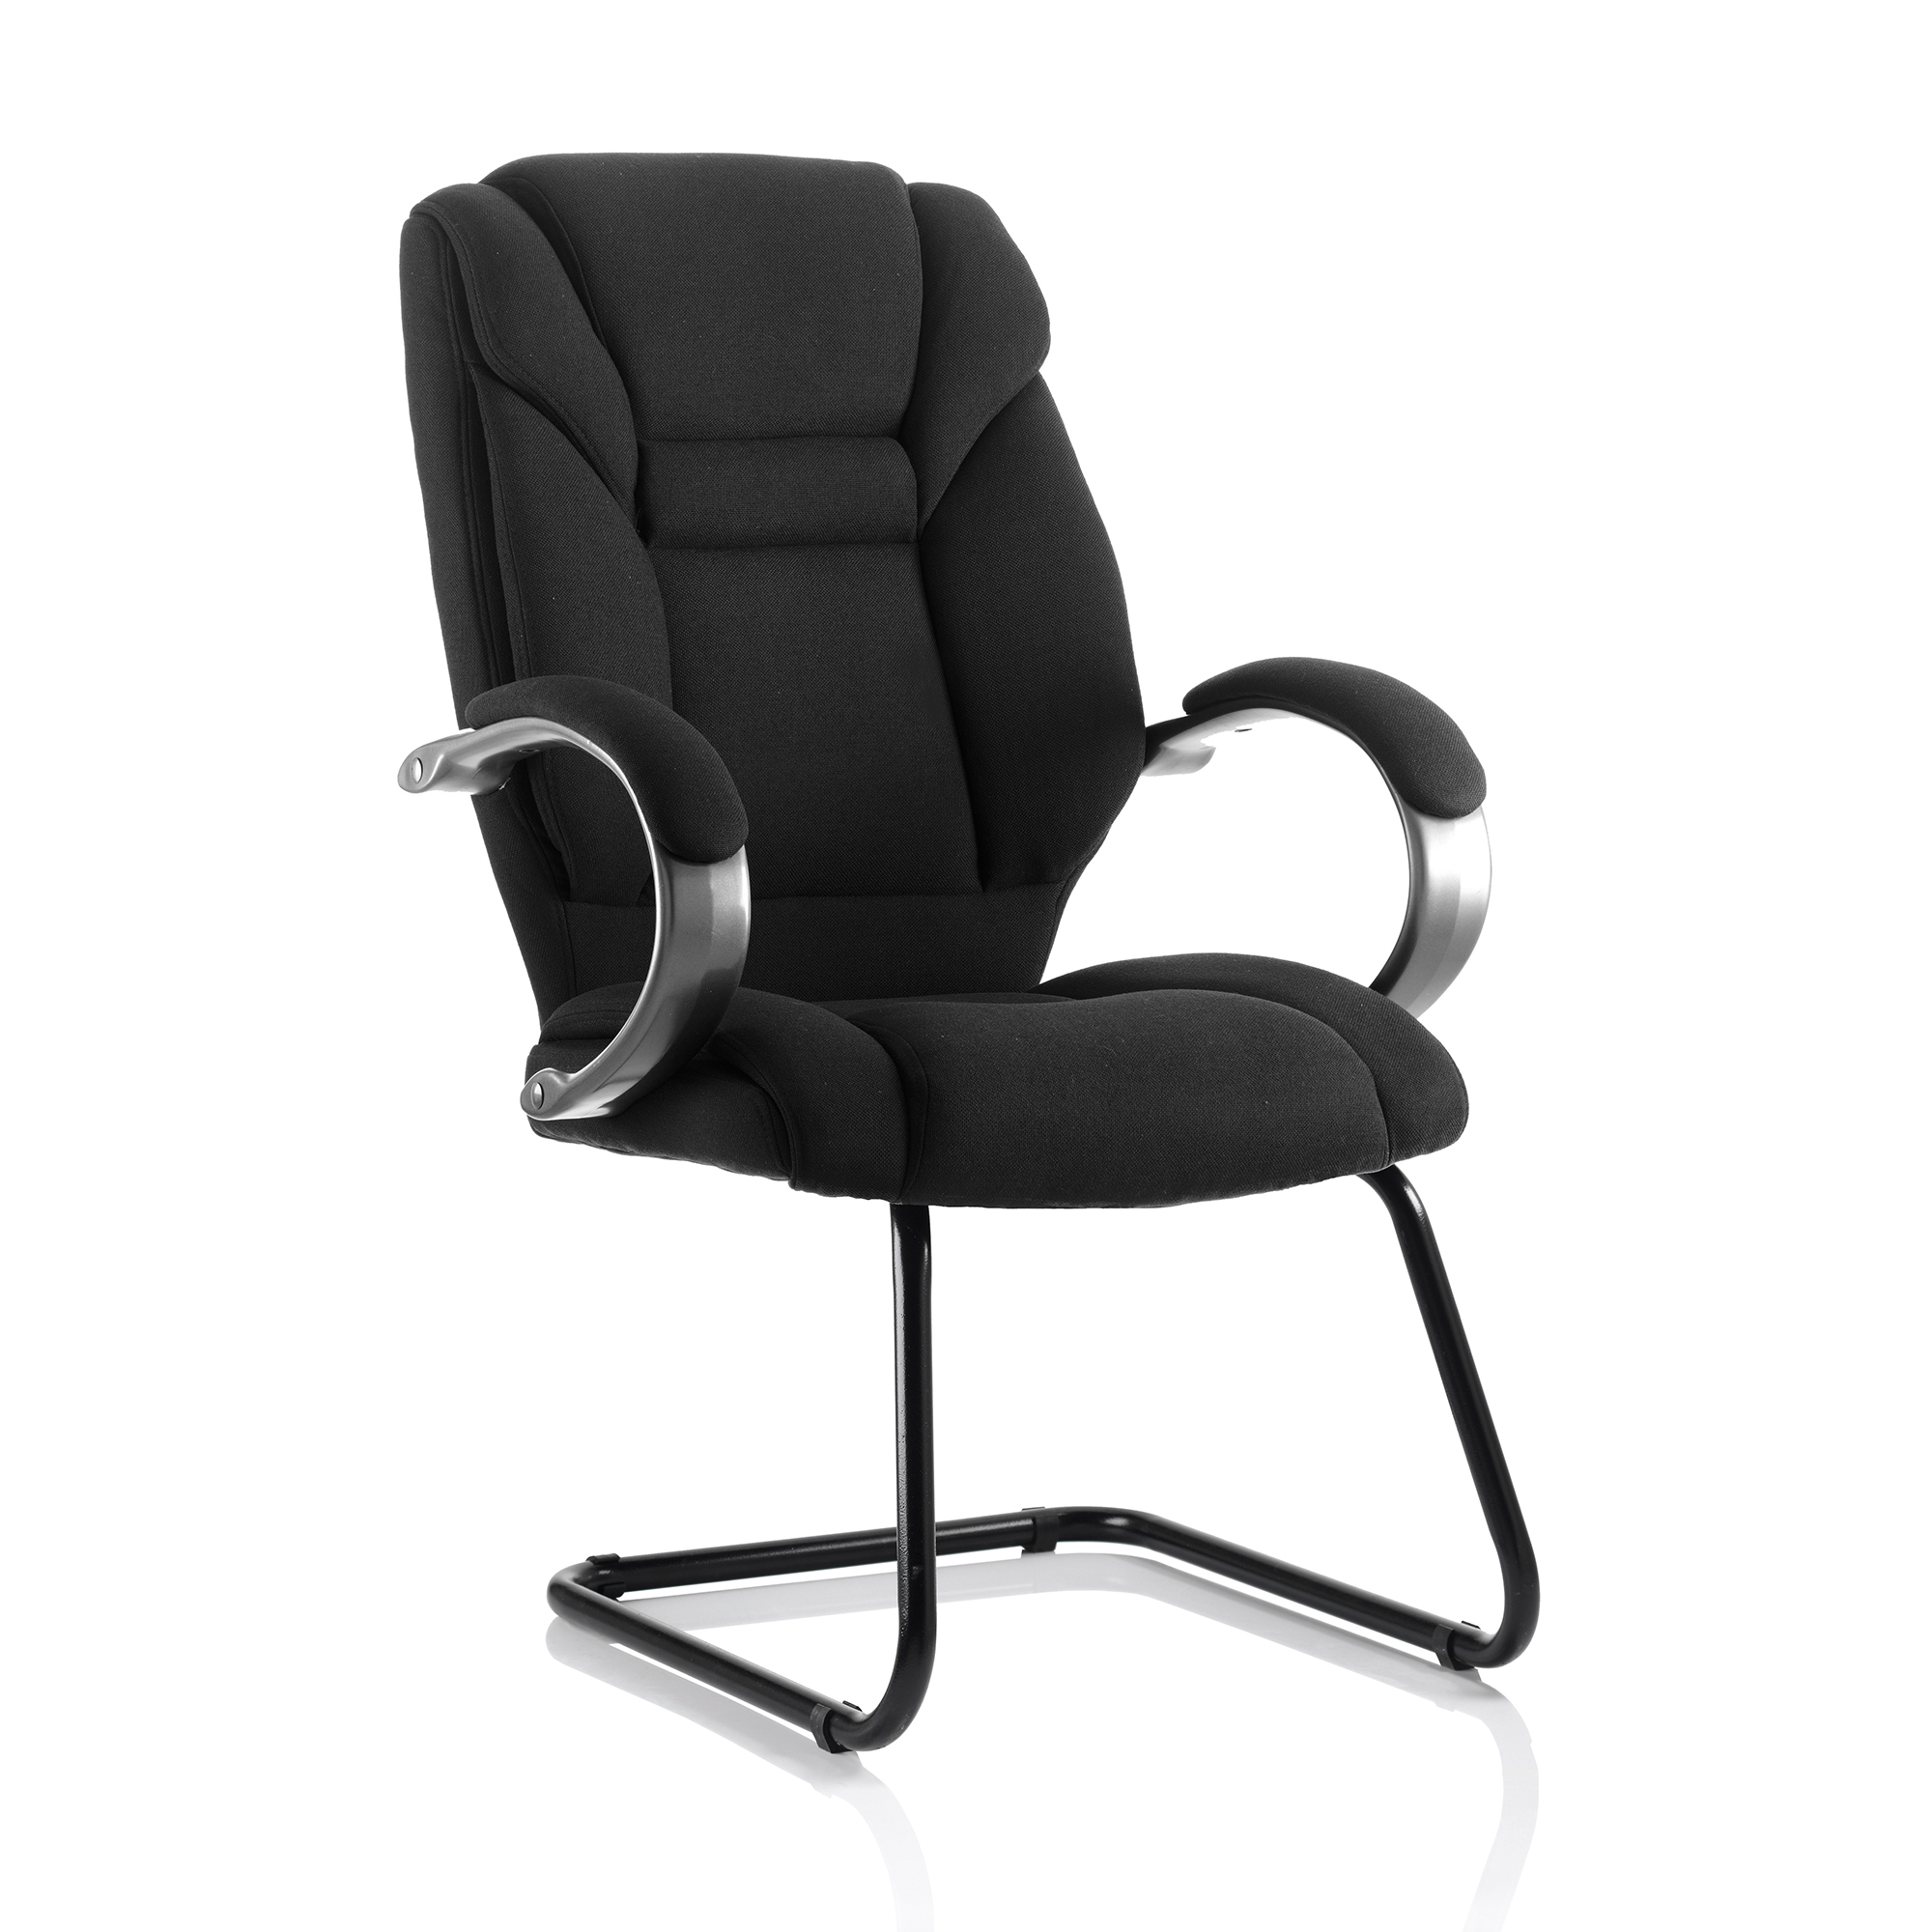 Trexus Galloway Cantilever Chair With Arms Fabric Black Ref KC0122